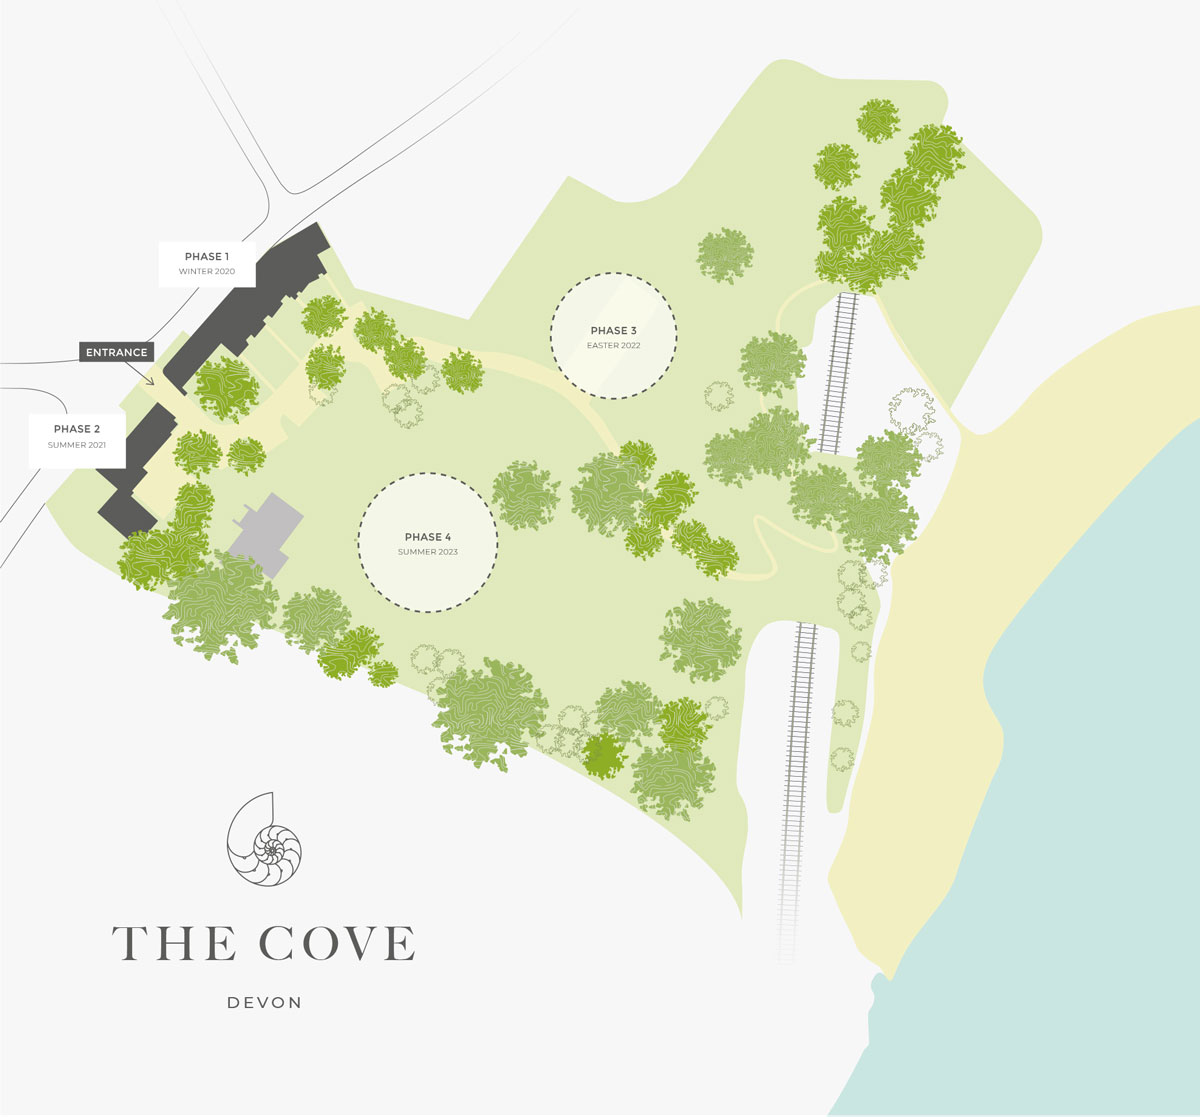 The Cove New Homes Development - Site Layout